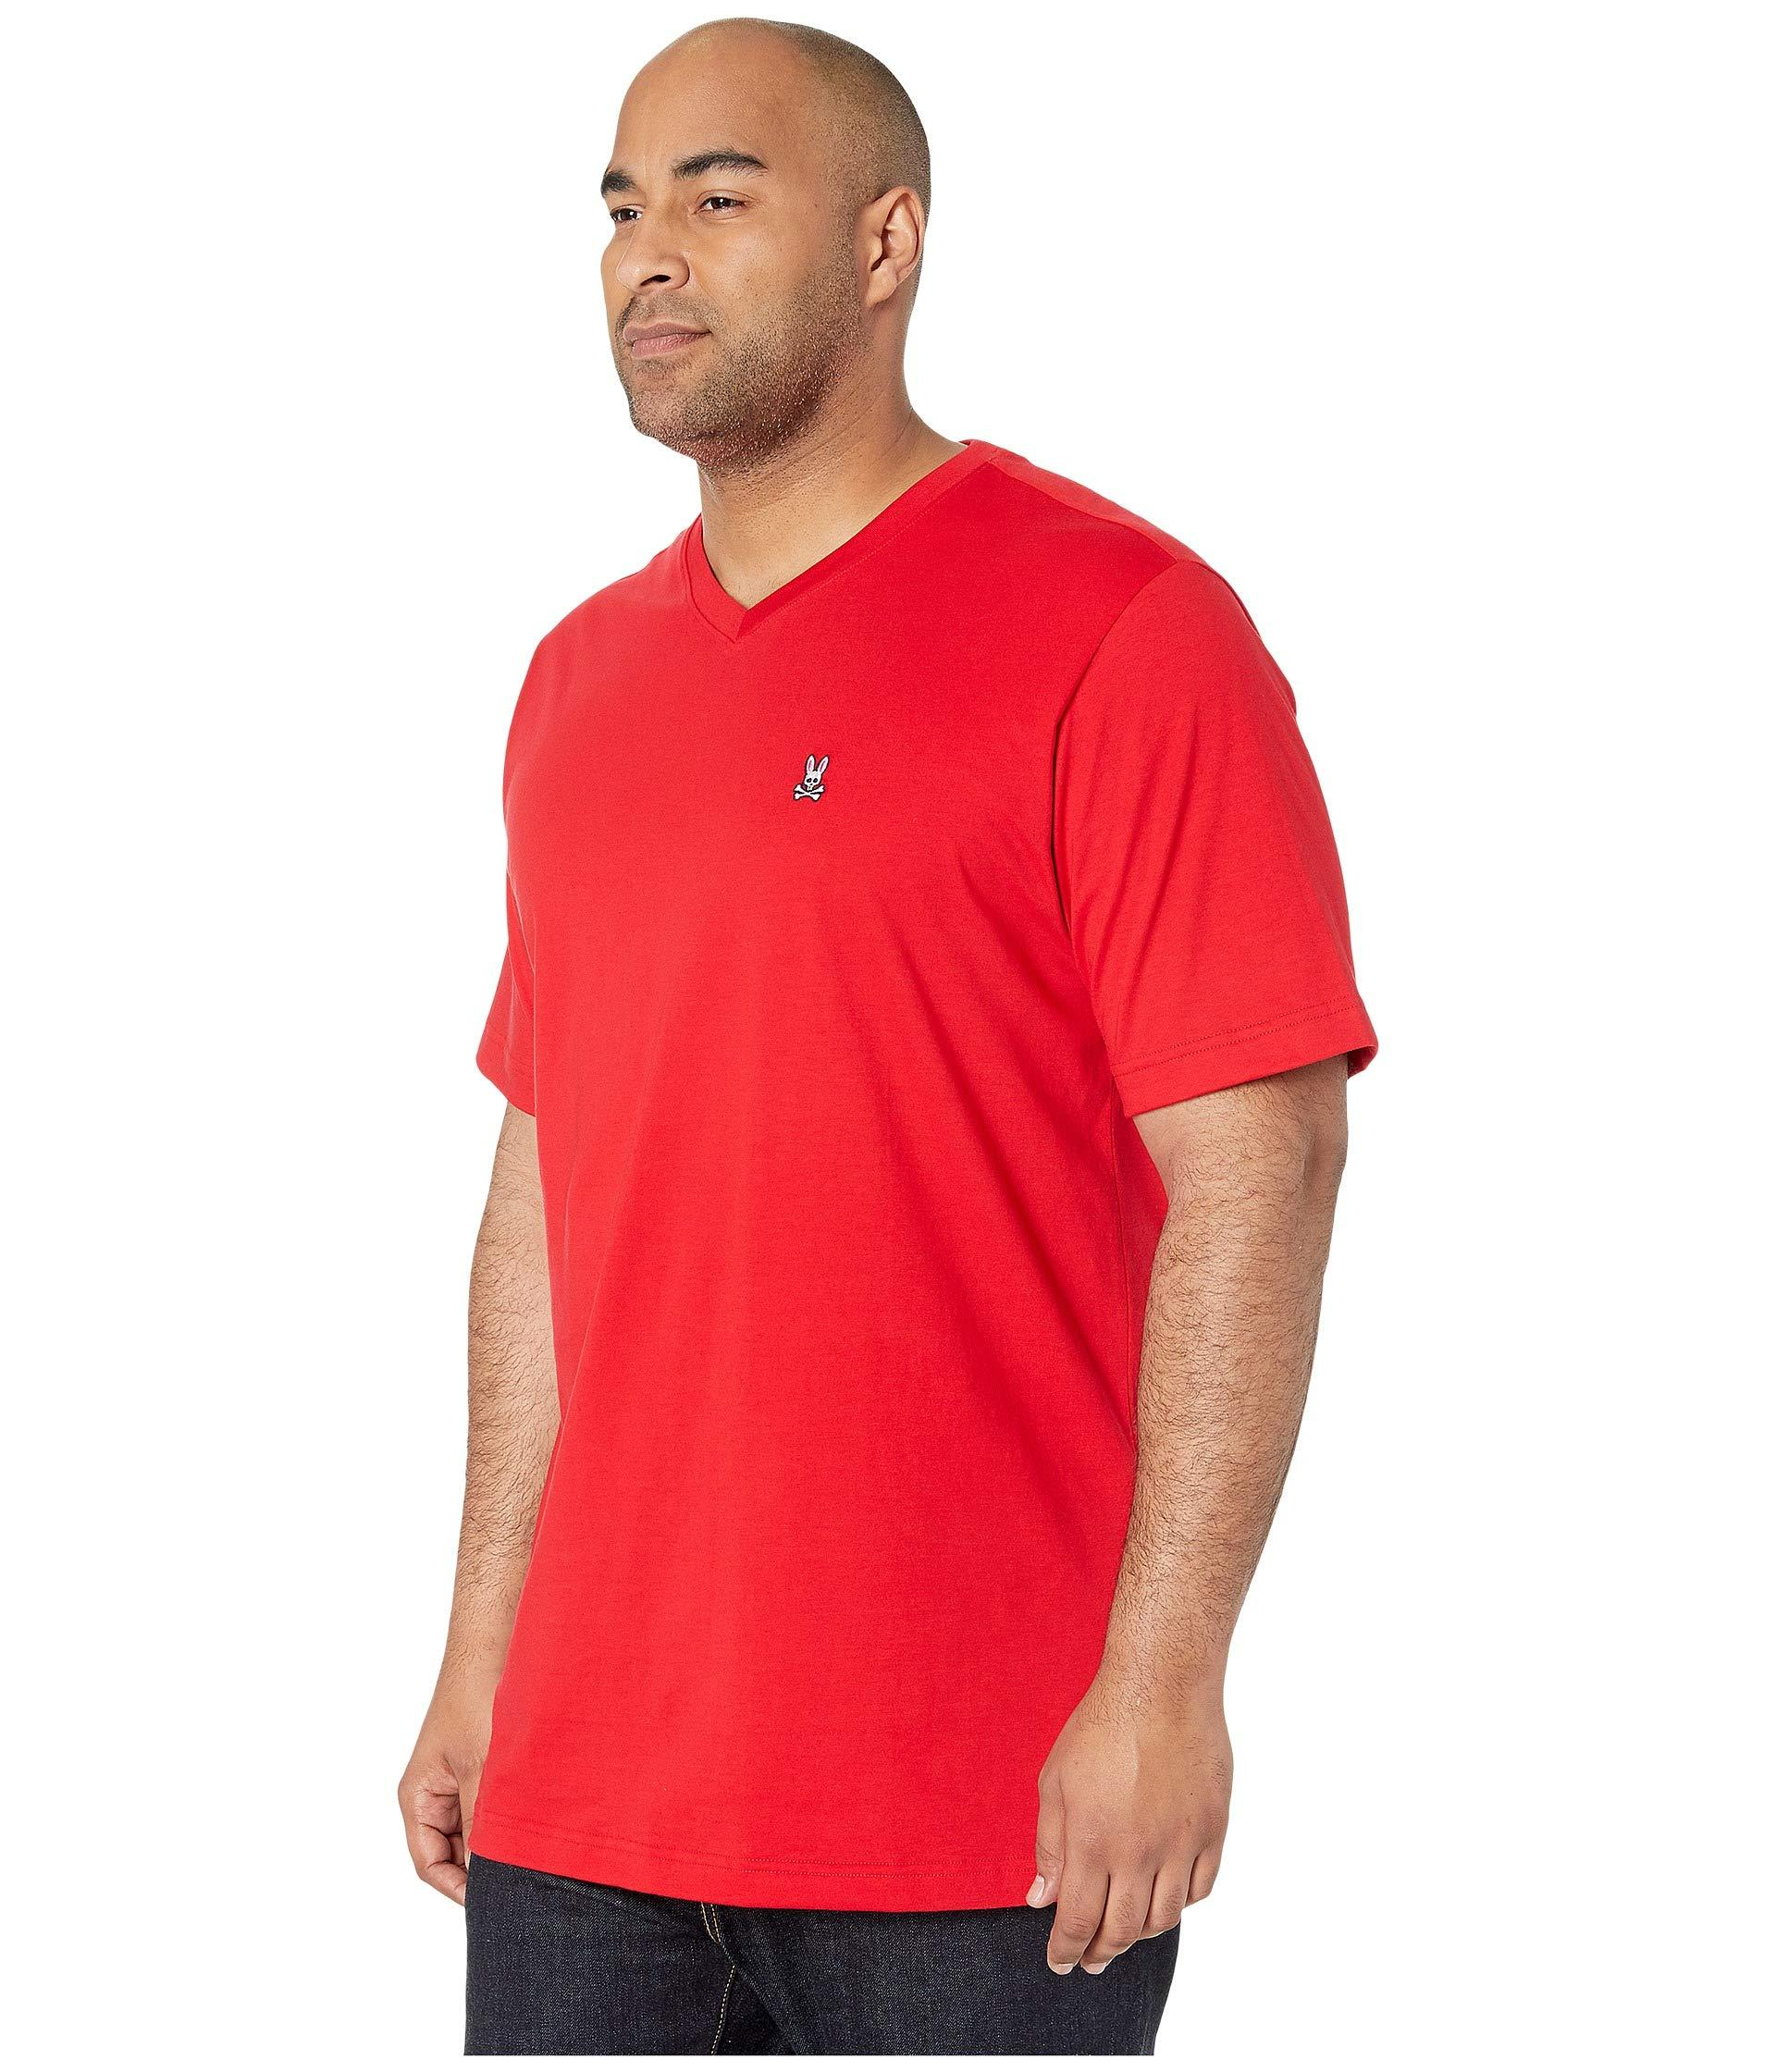 4337dc964c6 Lyst - Psycho Bunny Big Tall Classic V-neck Tee (cornflower) Men s Clothing  in Red for Men